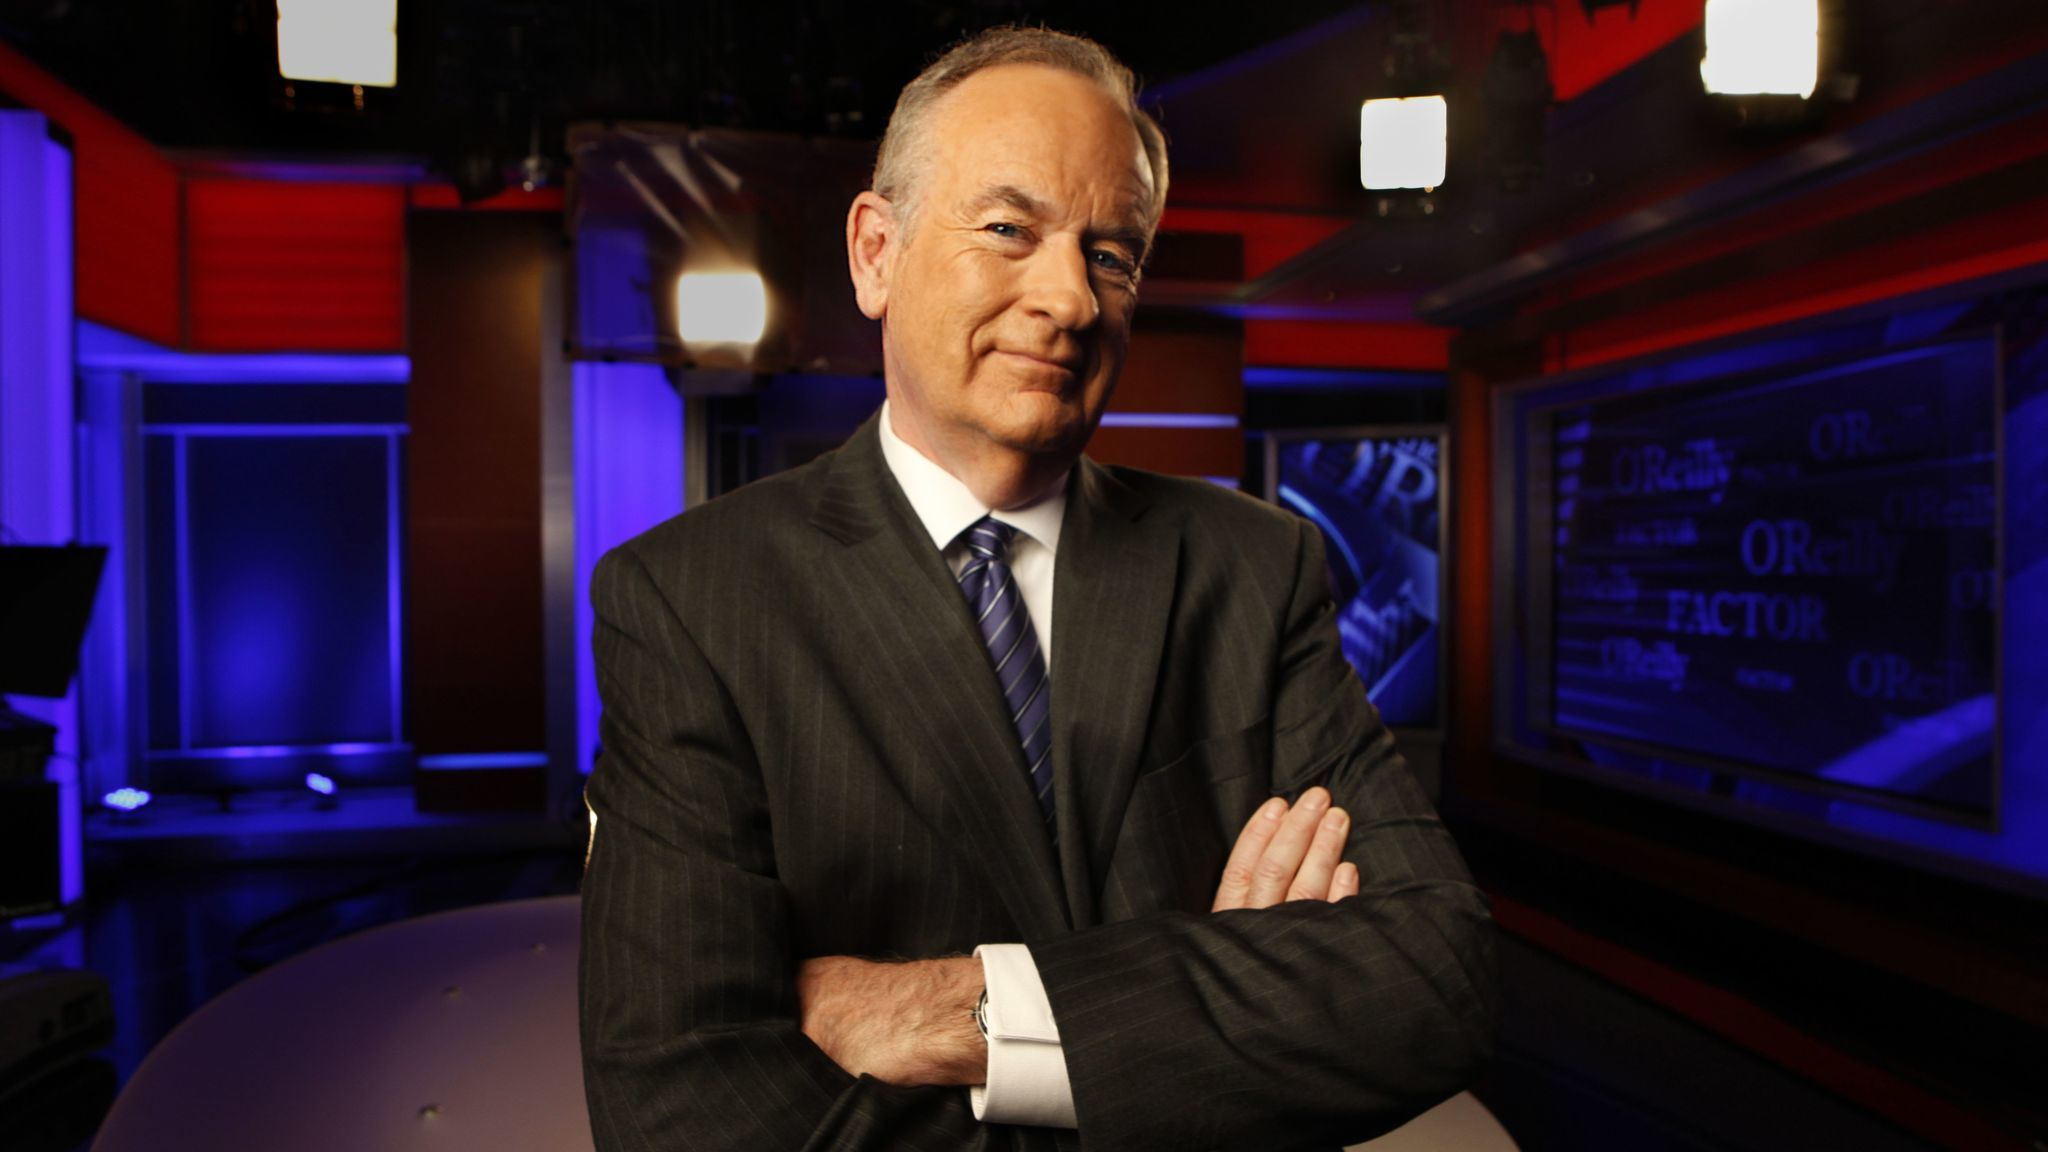 Stephen Colbert tries to predict what Bill O'Reilly will do next